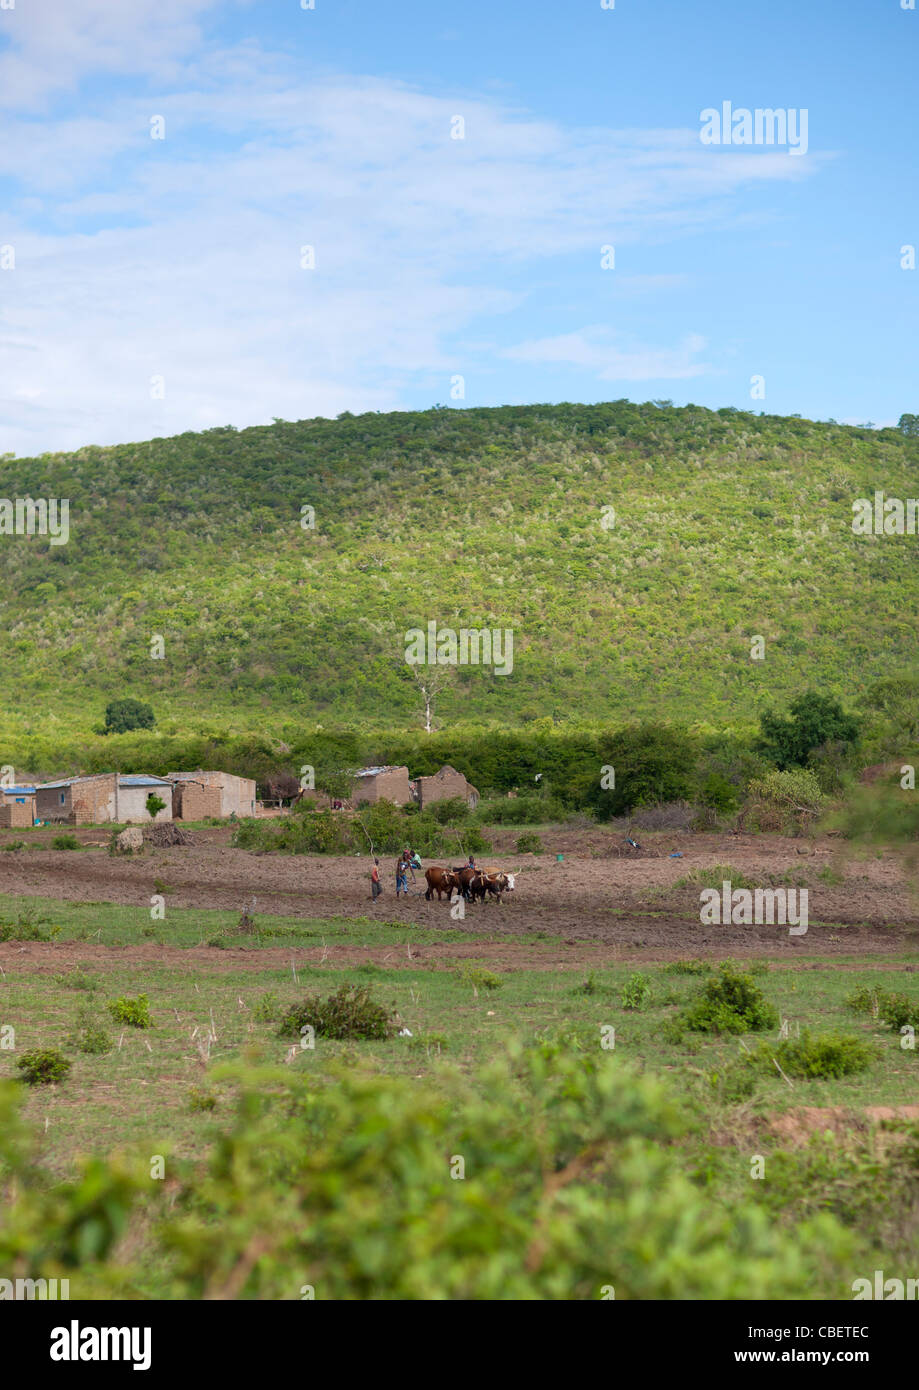 People Ploughing A Field Near Their Village, Lubango Area, Angola - Stock Image